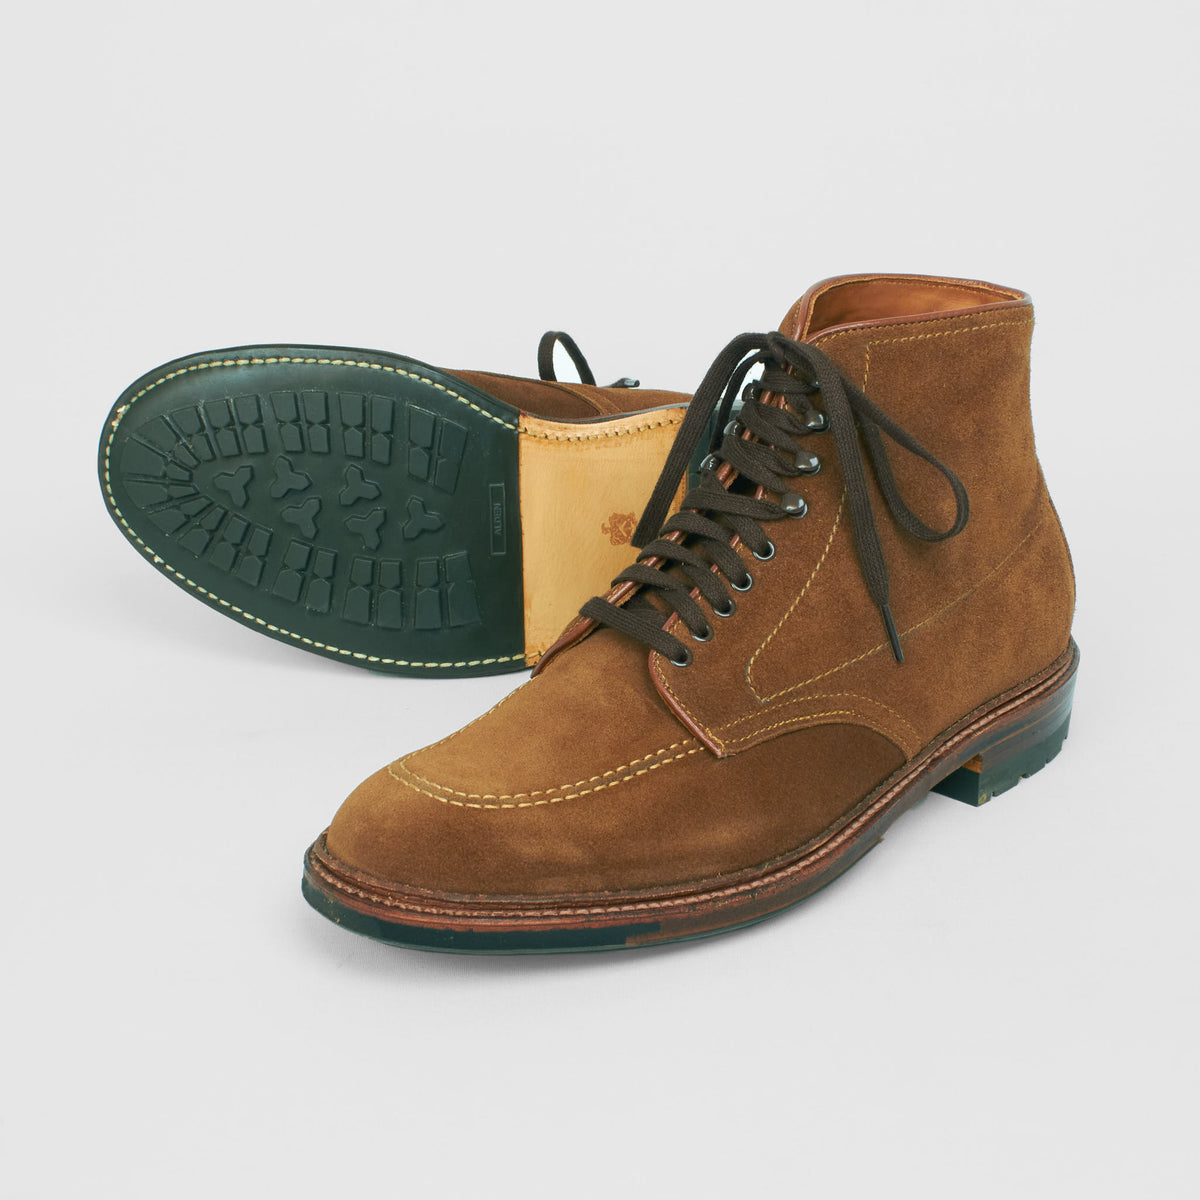 Alden Indy Boot Snuff Suede with Commando Sole